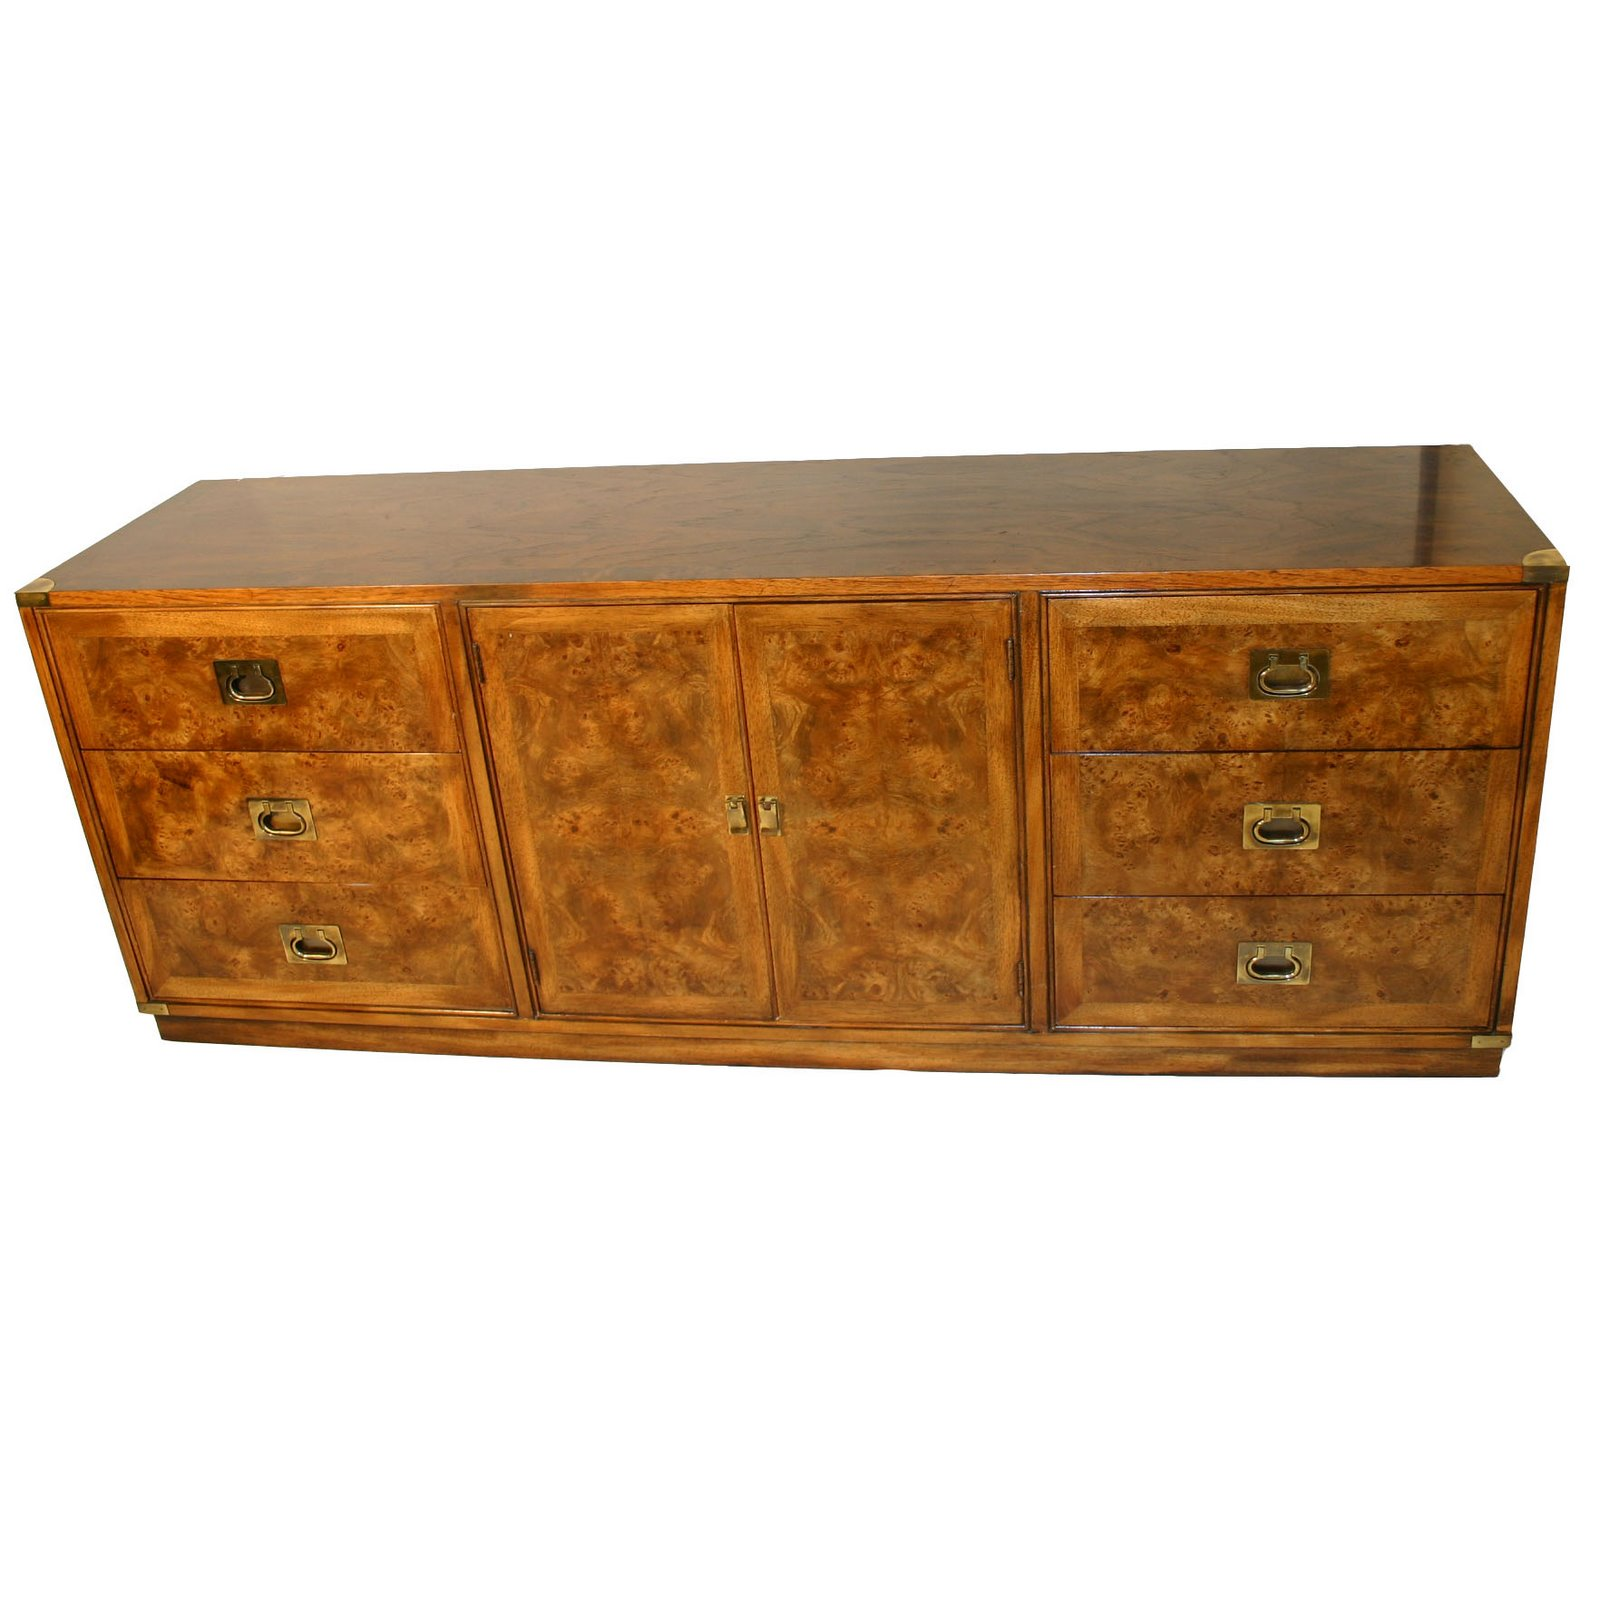 Vintage Hickory Manufacturing Company Furniture